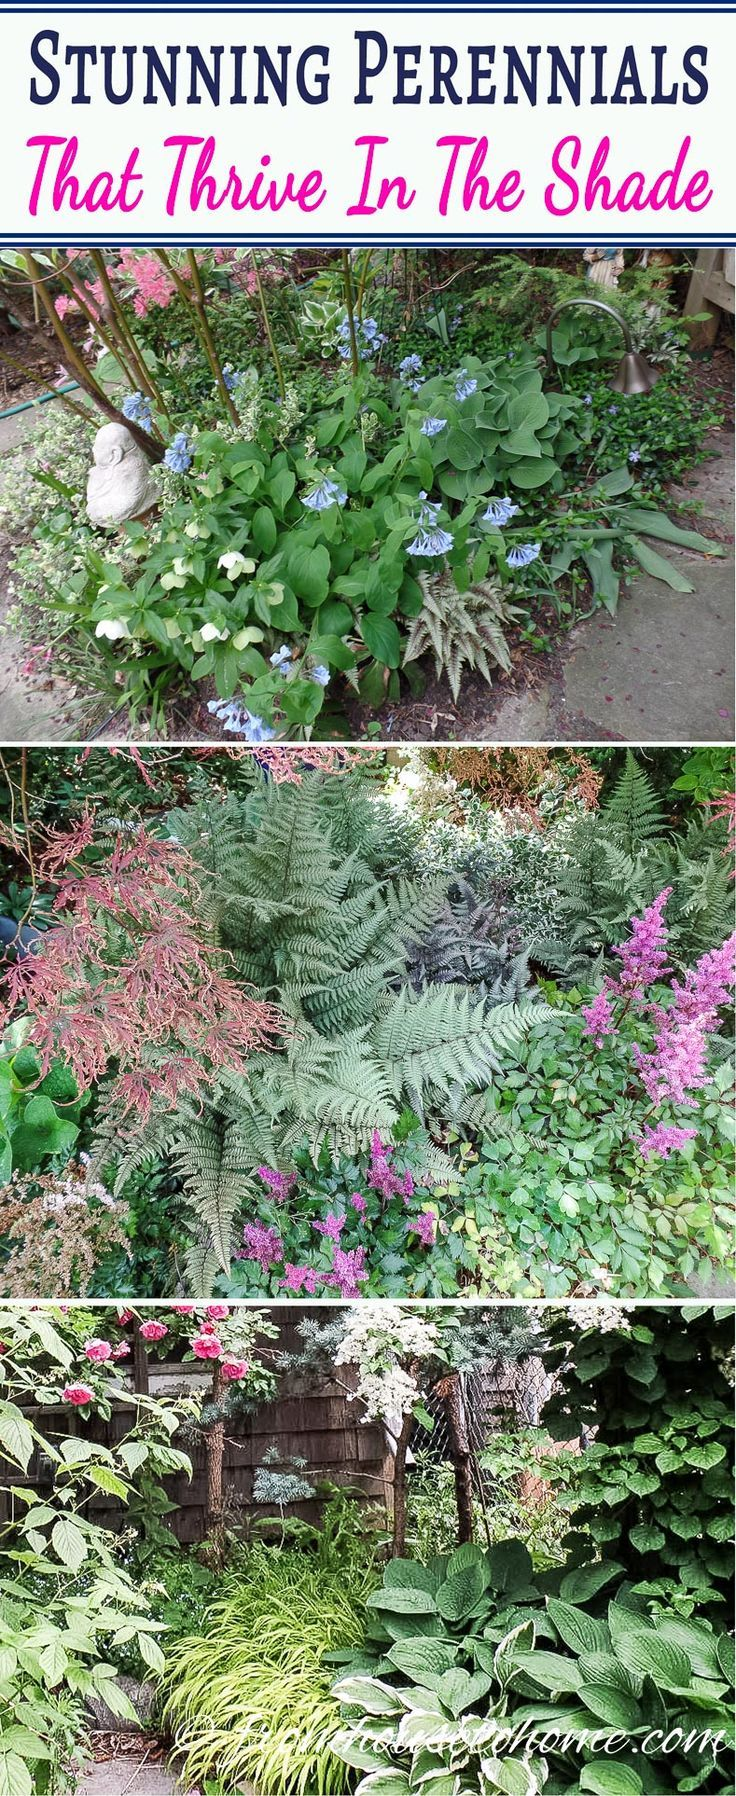 I LOVE these beautiful flowering perennial ground cover plants. I will be planting them under the bushes in my front yard to help keep the weeds down. #shadeperennials #perennialgroundcover